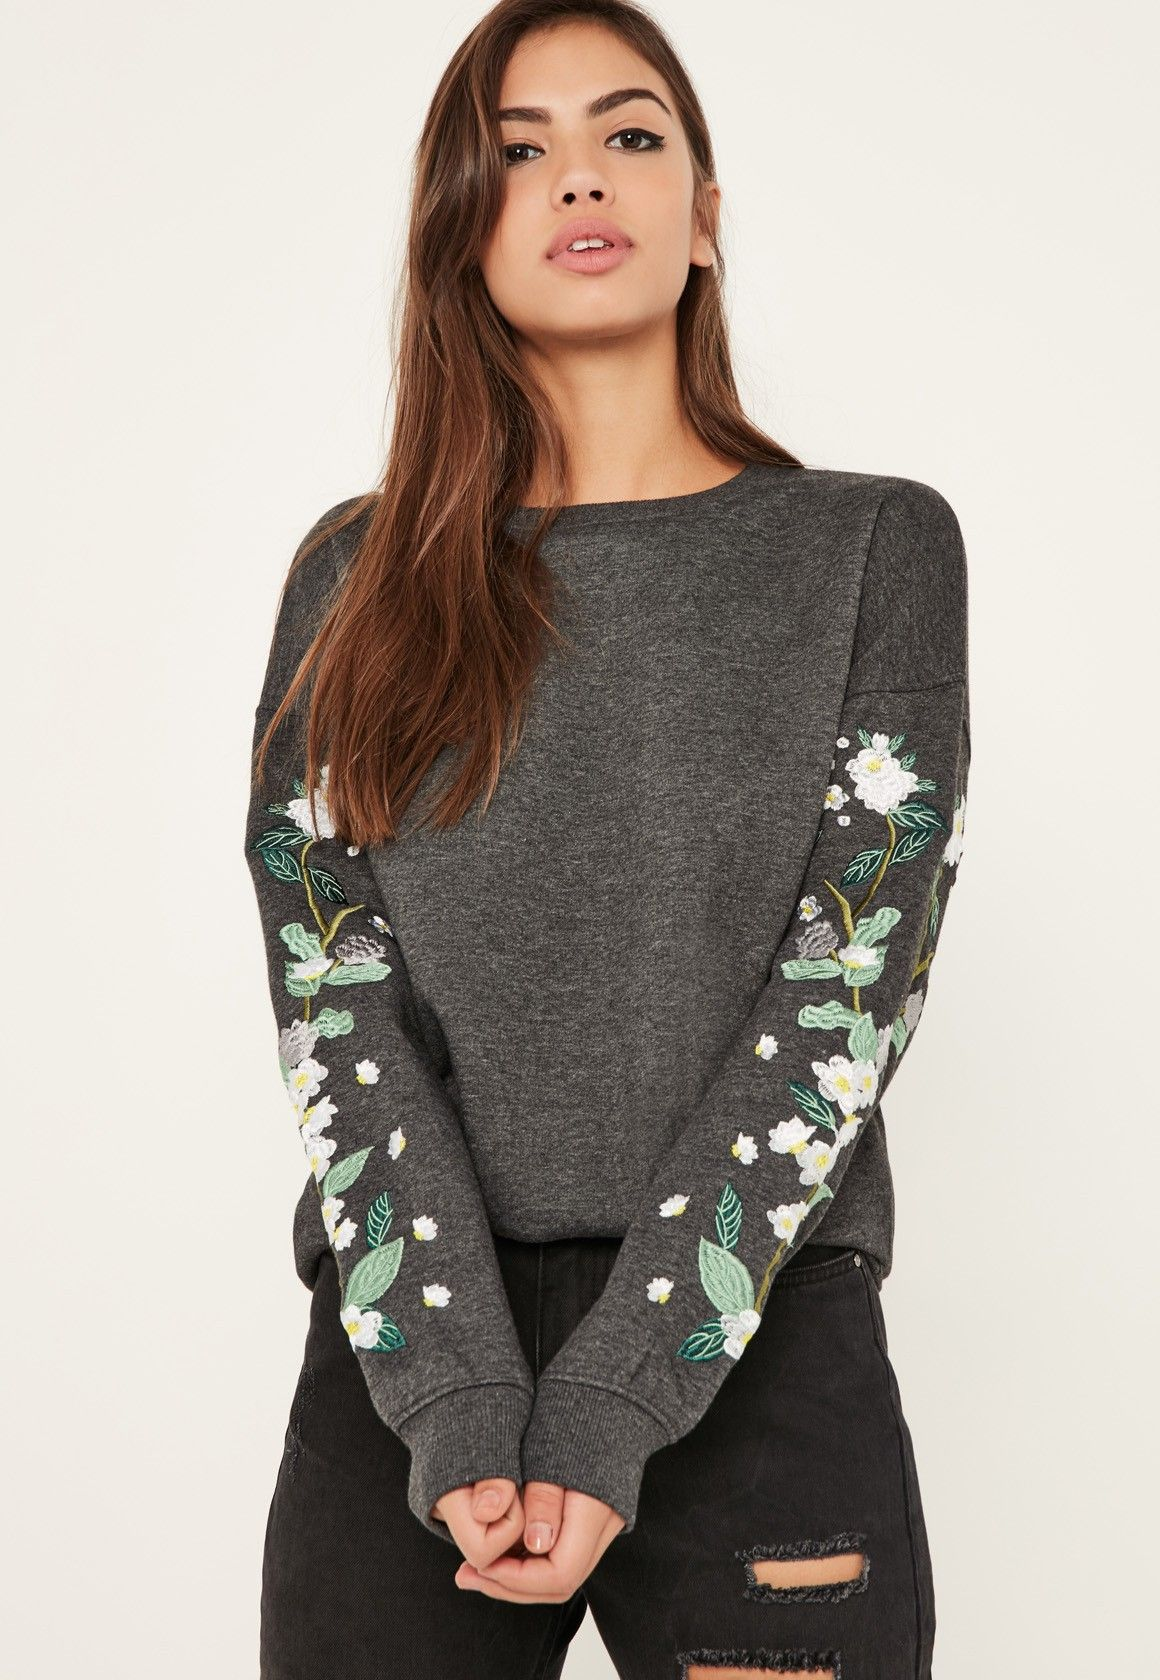 Be In Bloom For The New Season In This Floral Embroidered